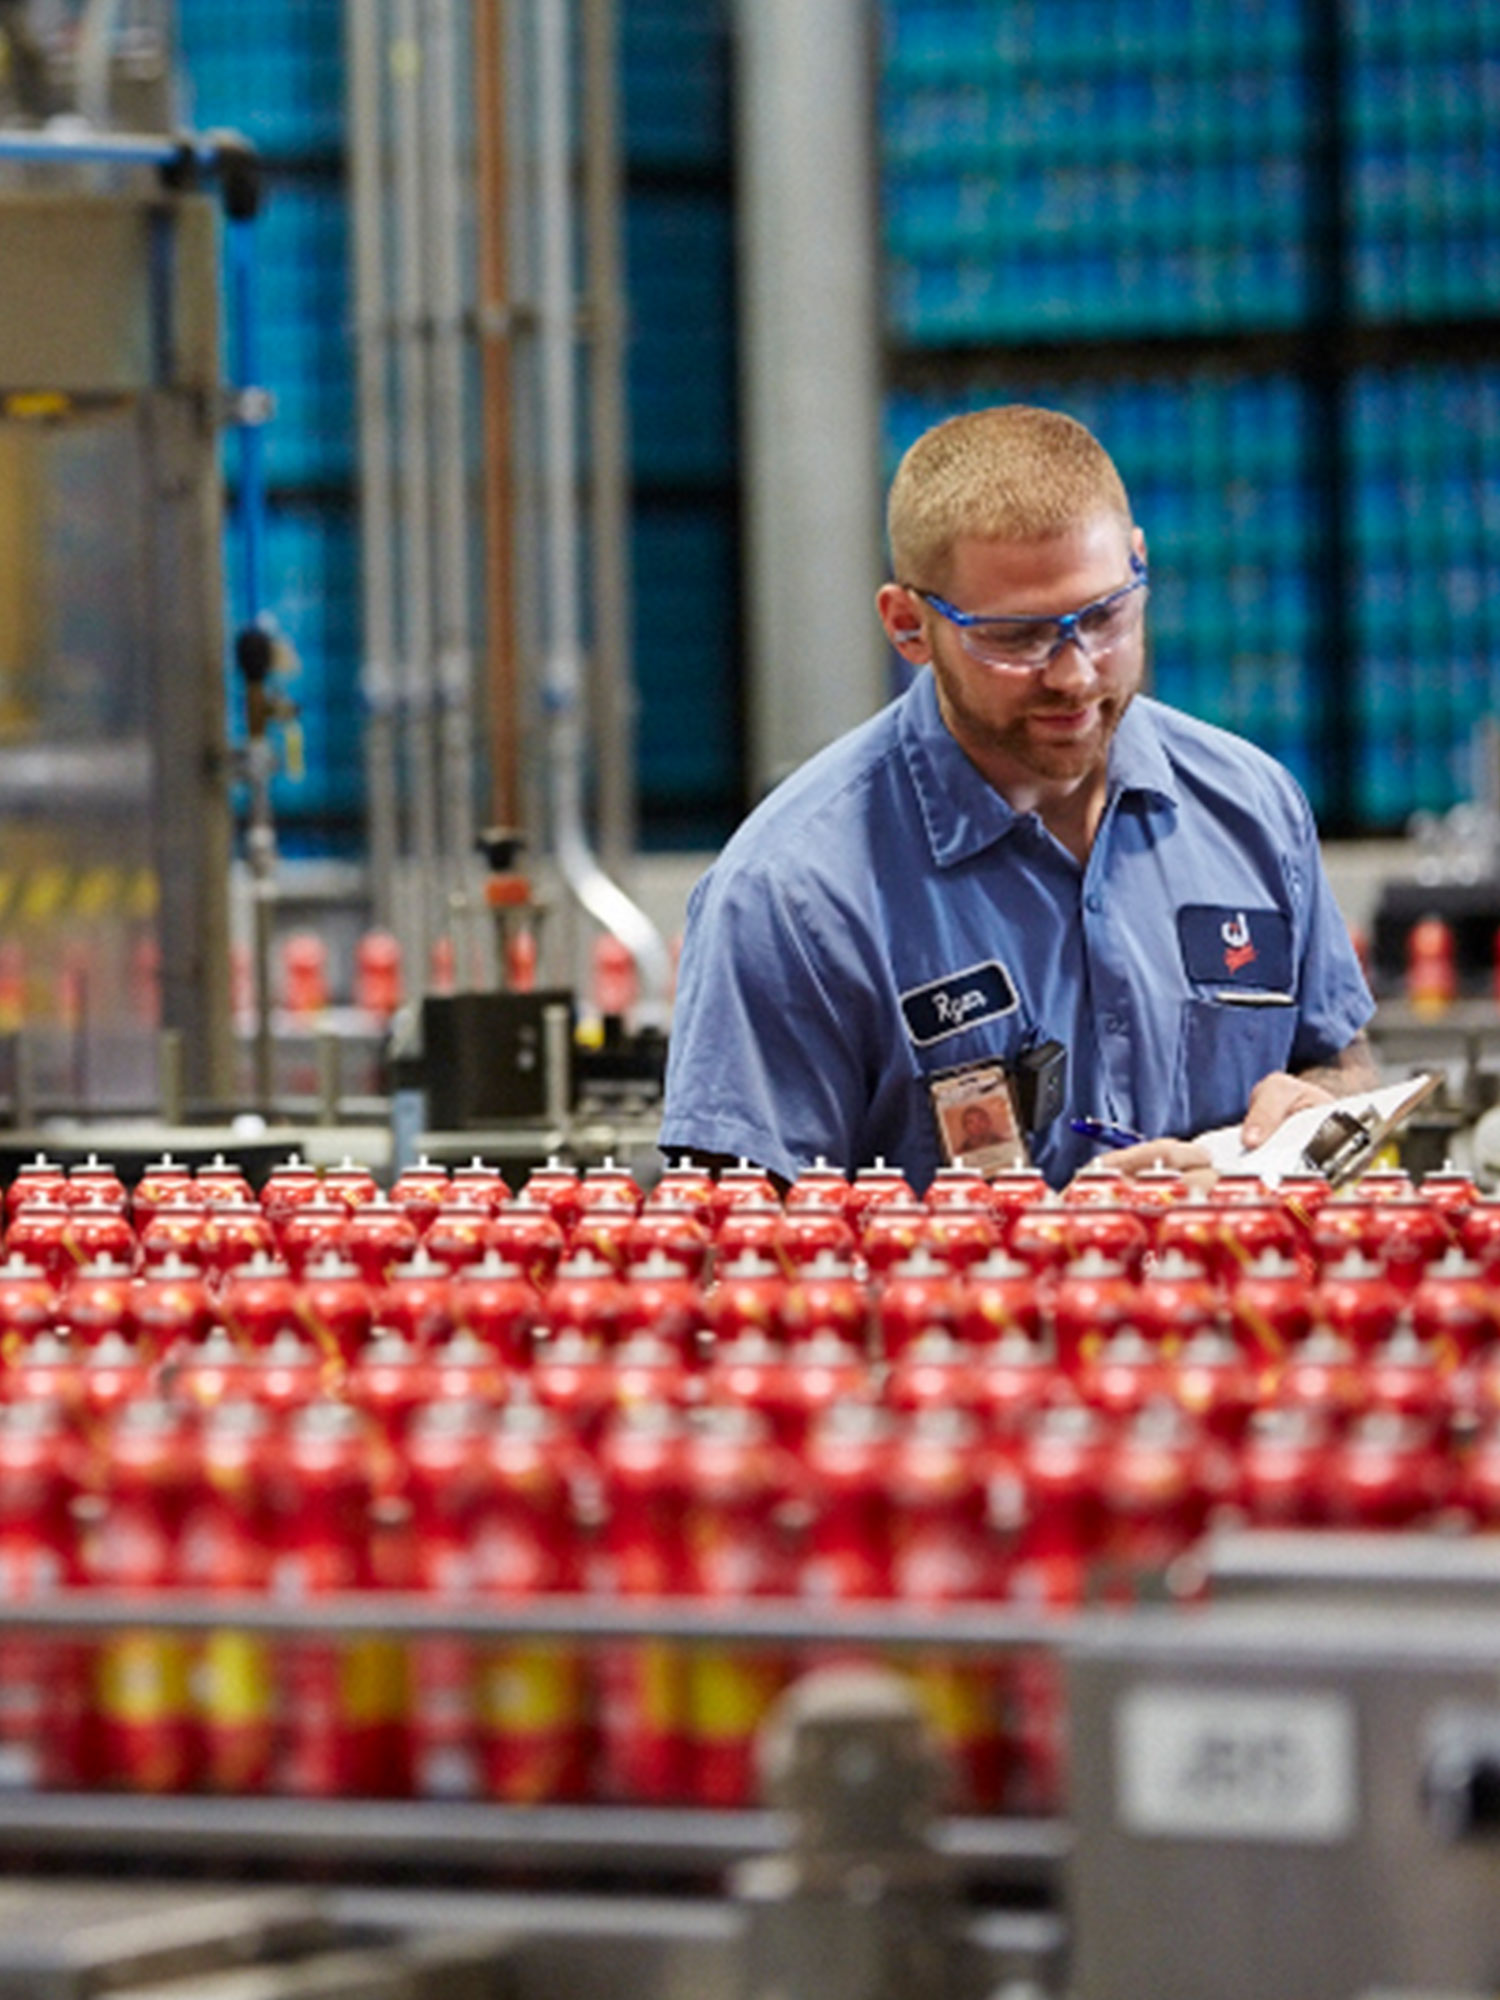 SC Johnson Factory Employee Preforming Quality Control Tests